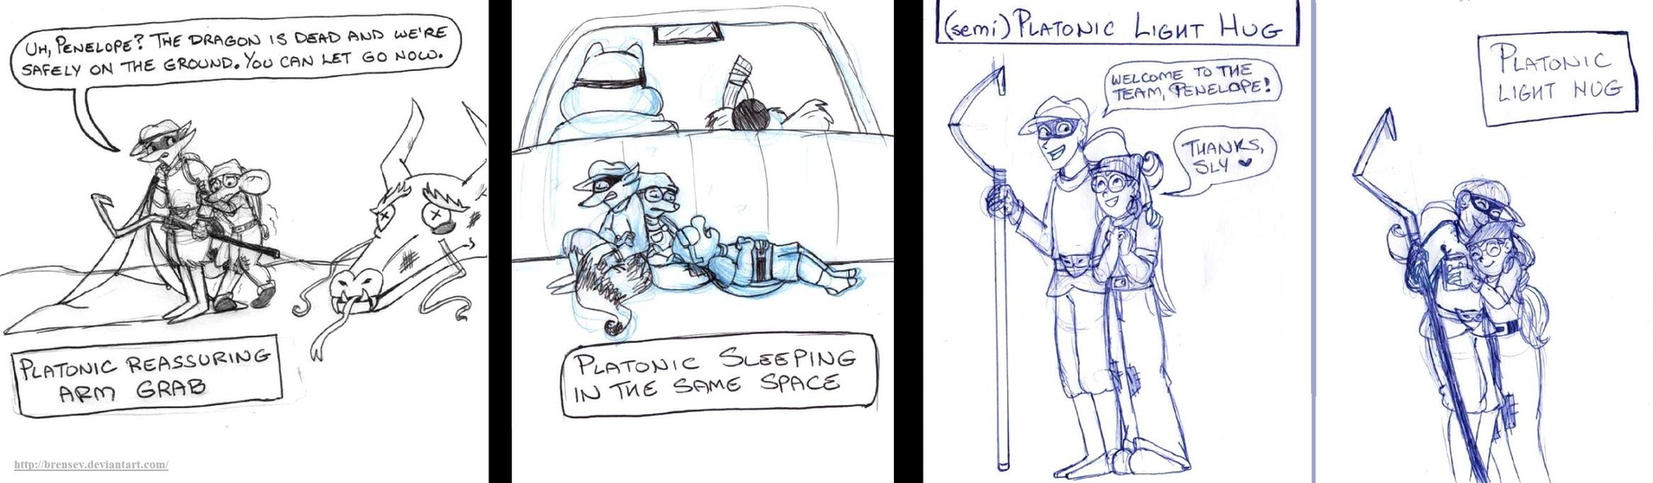 Platonic Love Meme: Sly and Penelope (p.1) by brensey